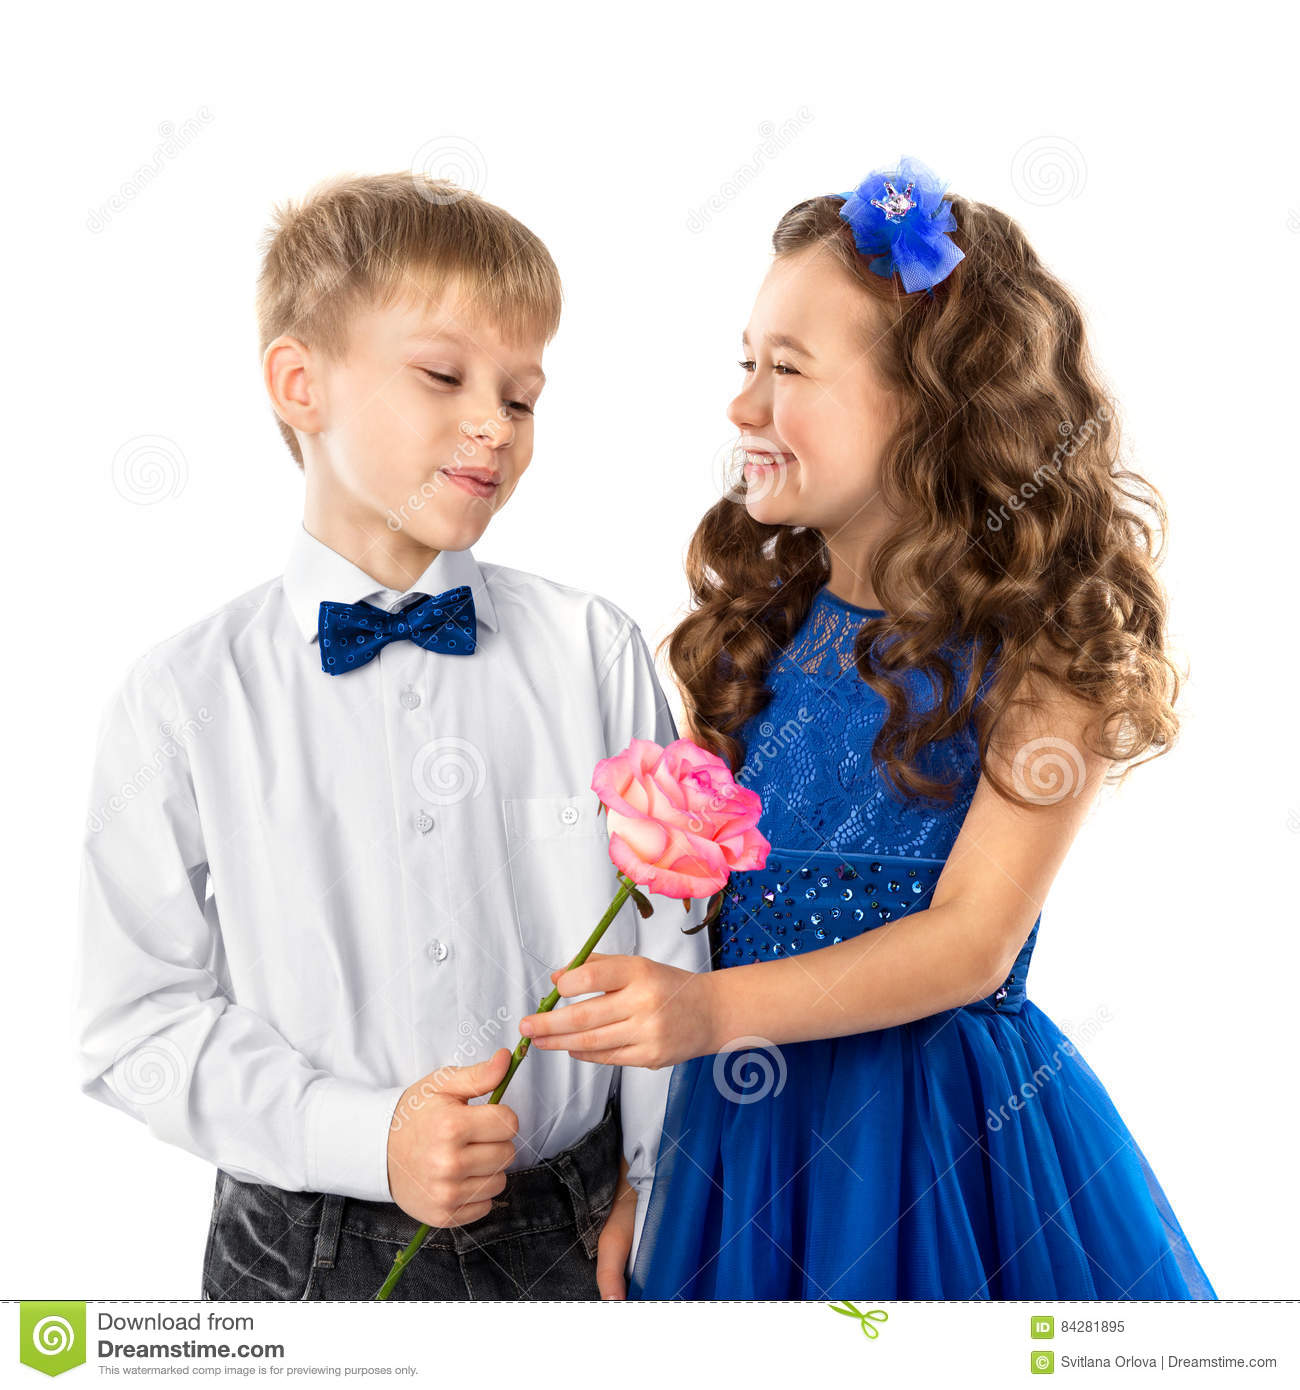 abnormal love for a male child Men who have sex with men, as well as women who have sex with women, or men on the down-low may engage in sex acts with members of the same sex while continuing sexual and romantic relationships with the opposite sex.